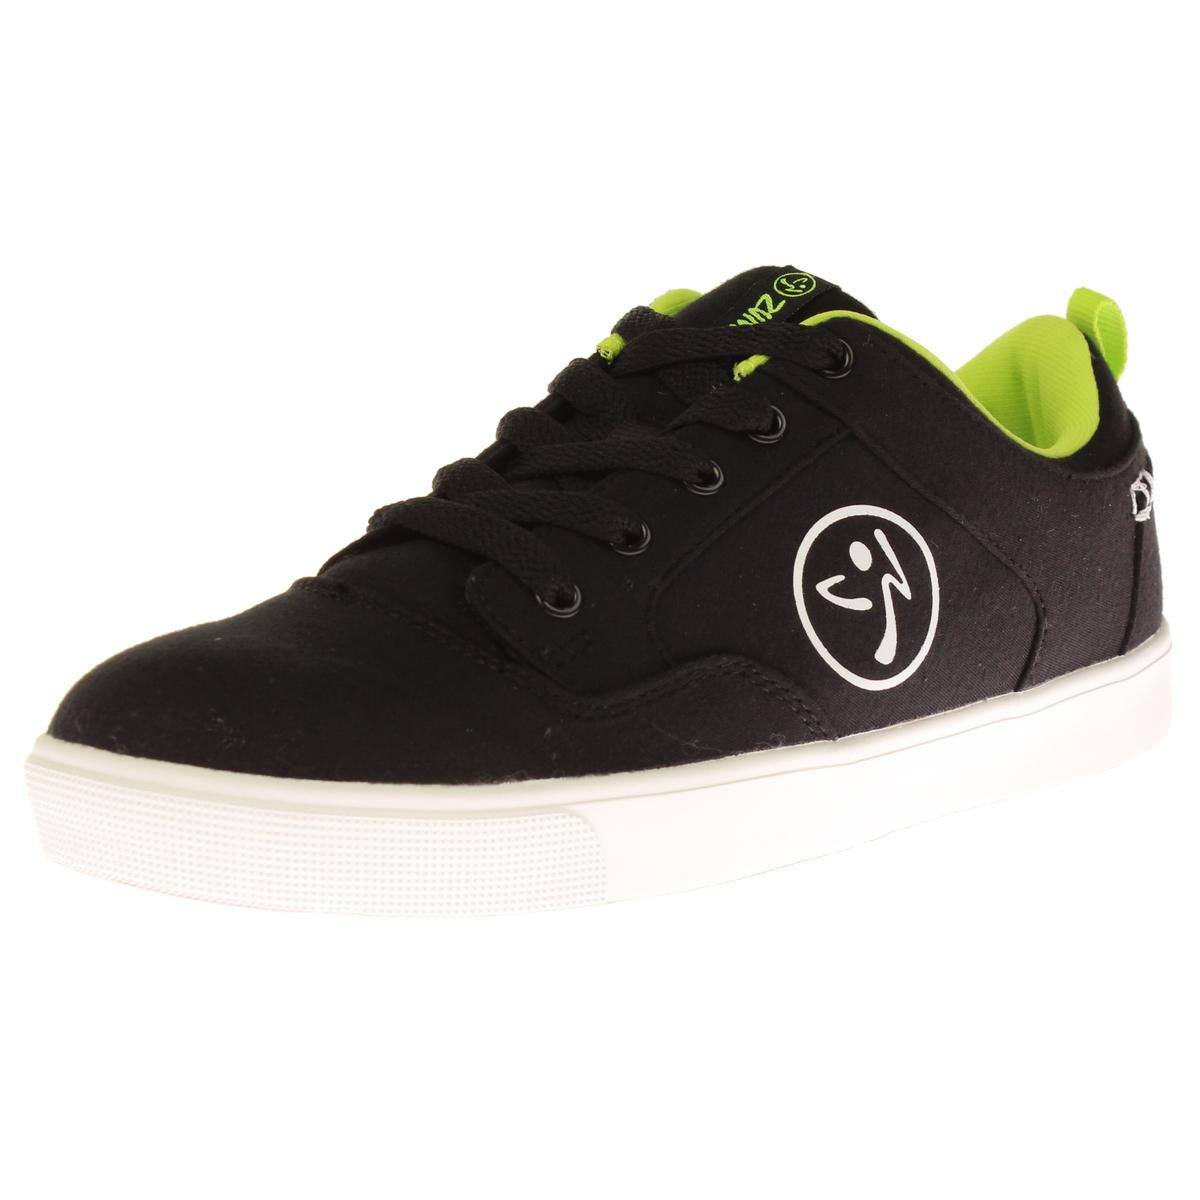 Zumba Womens Street Bold Low Top Lace Up Dance Shoes